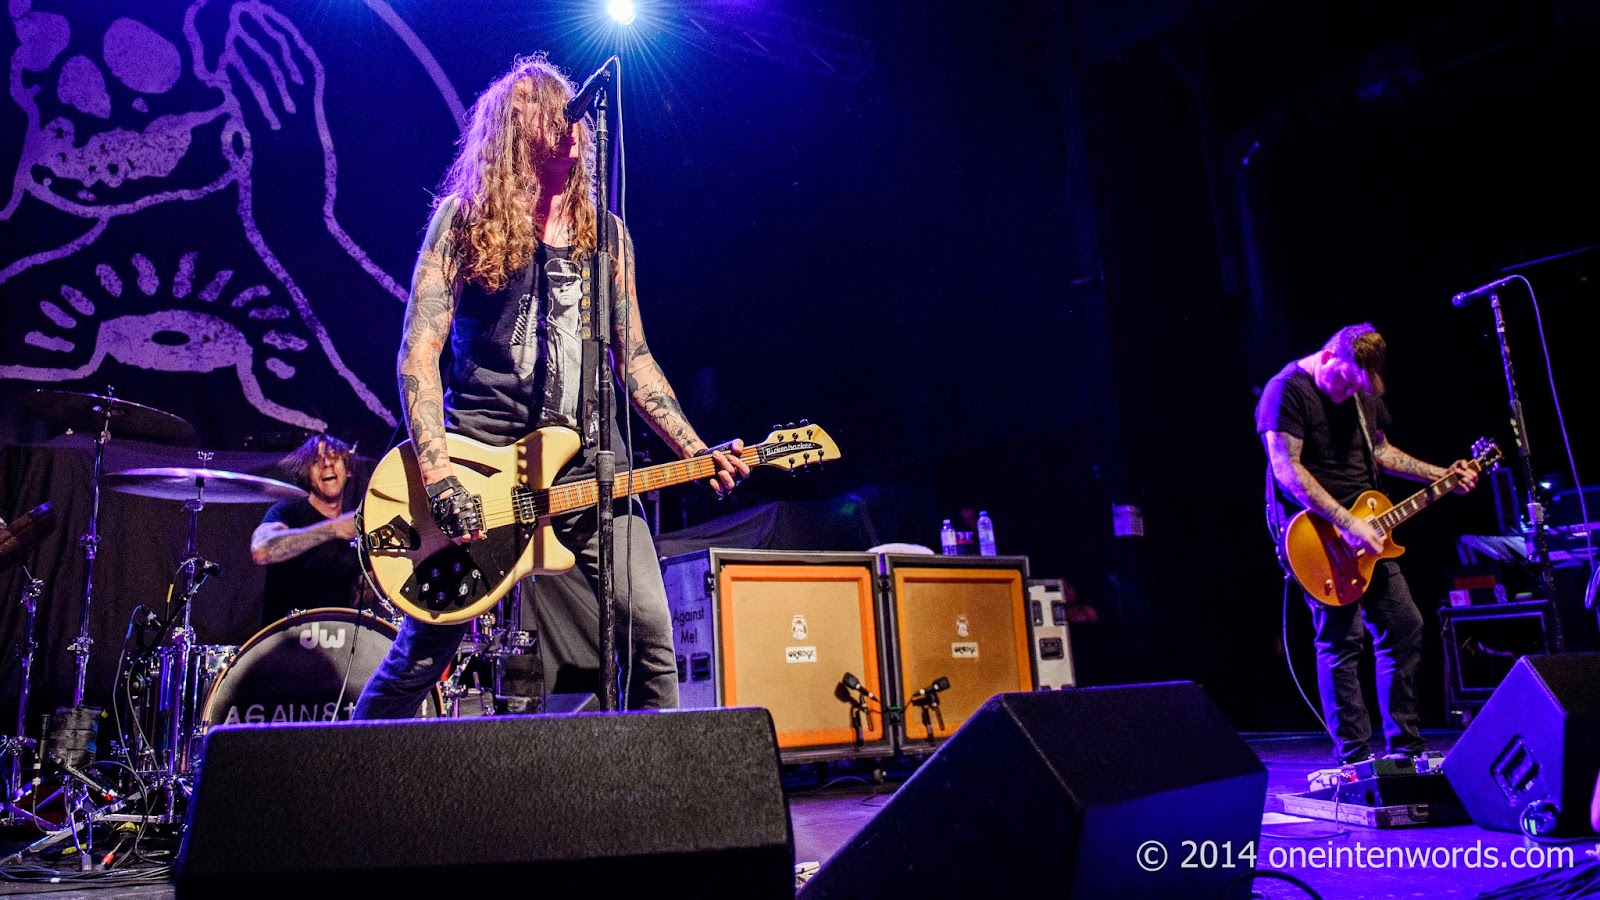 Against Me! at Sound Academy September 19, 2014 Toronto one in ten words toronto indie alternative music blog concert photography pictures